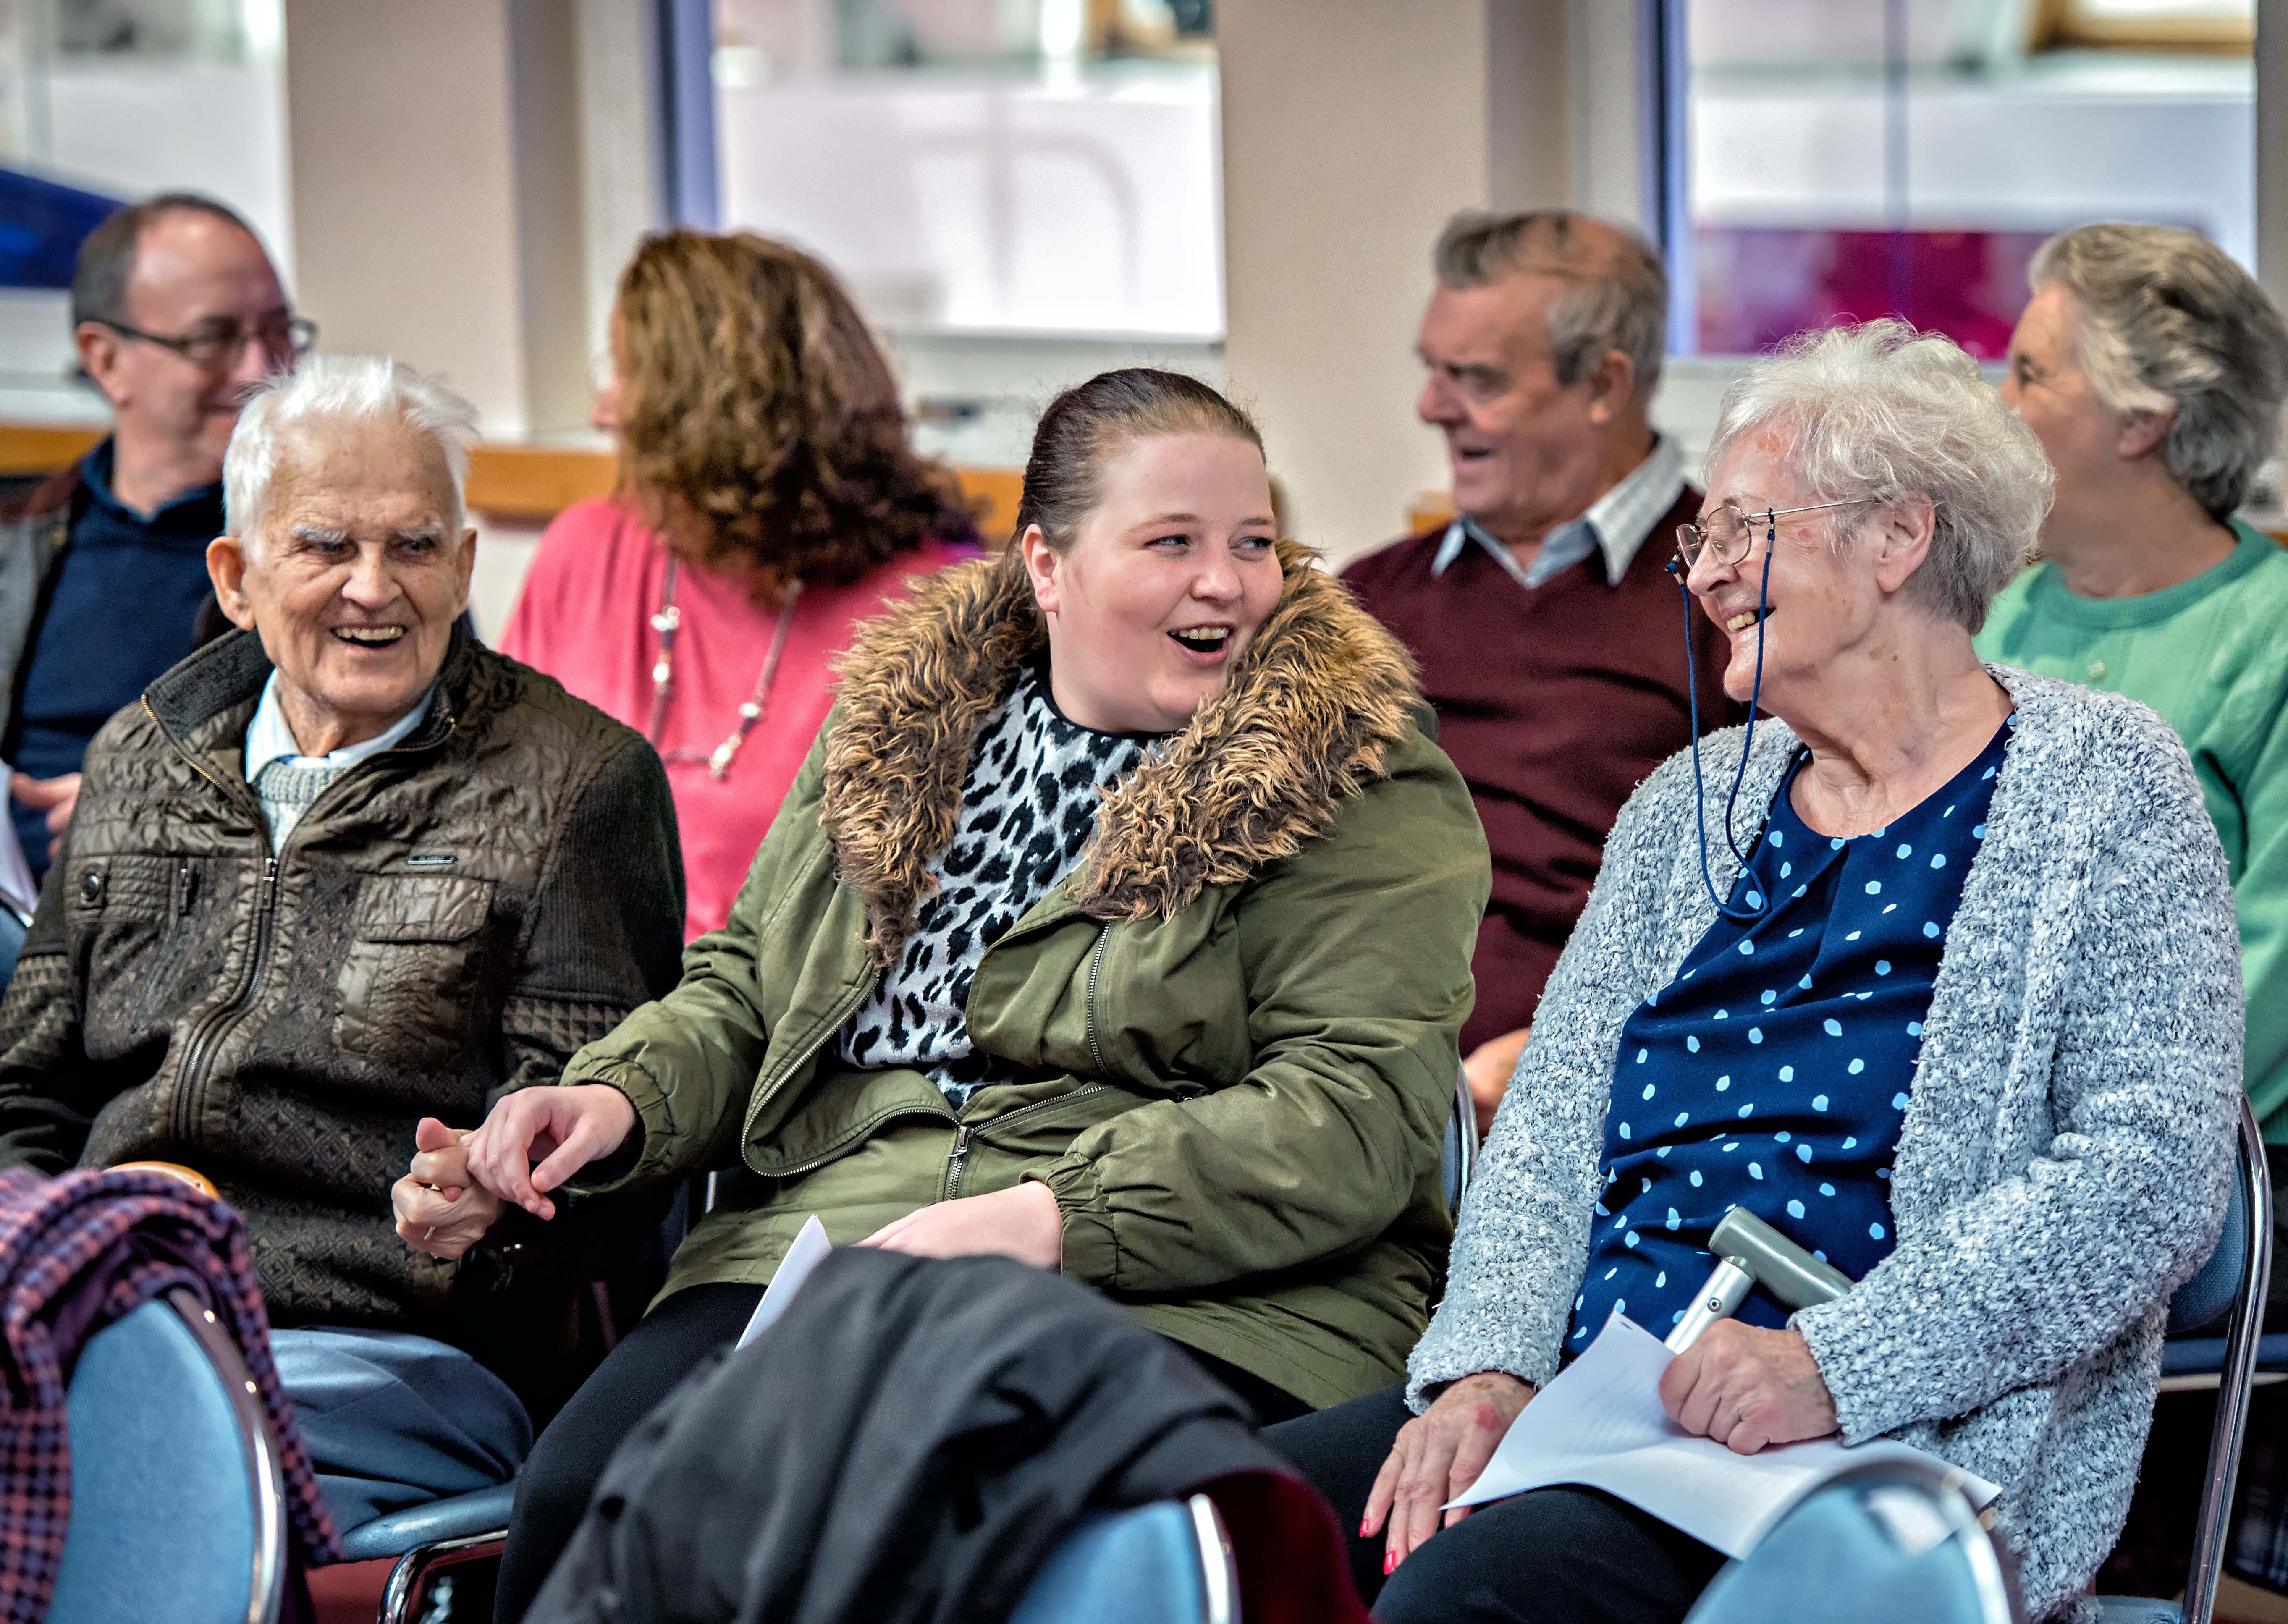 West Yorkshire Playhouse awarded £99,950 grant to develop Festival of Theatre and Dementia